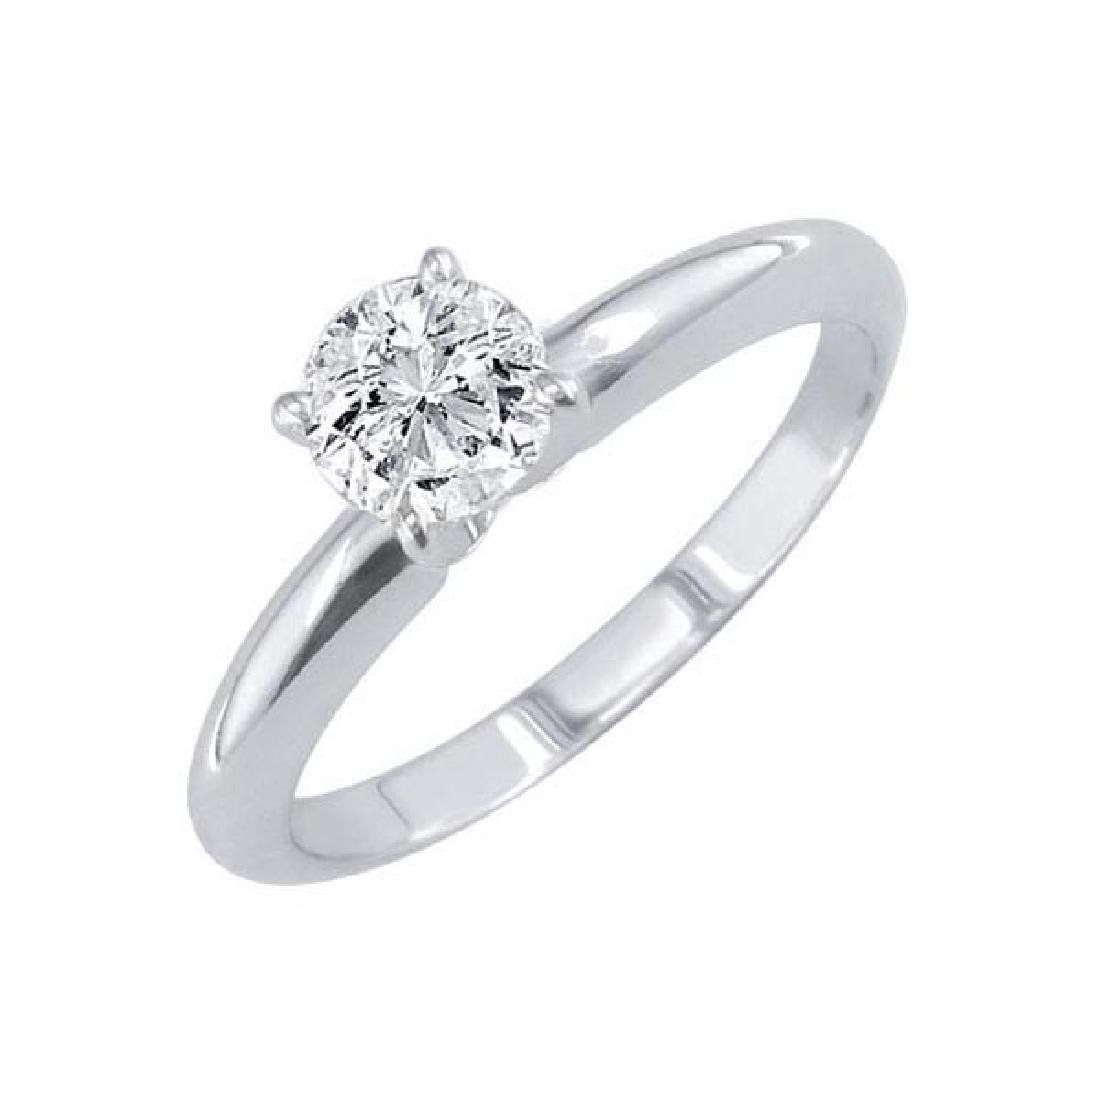 Certified 0.7 CTW Round Diamond Solitaire 14k Ring D/SI